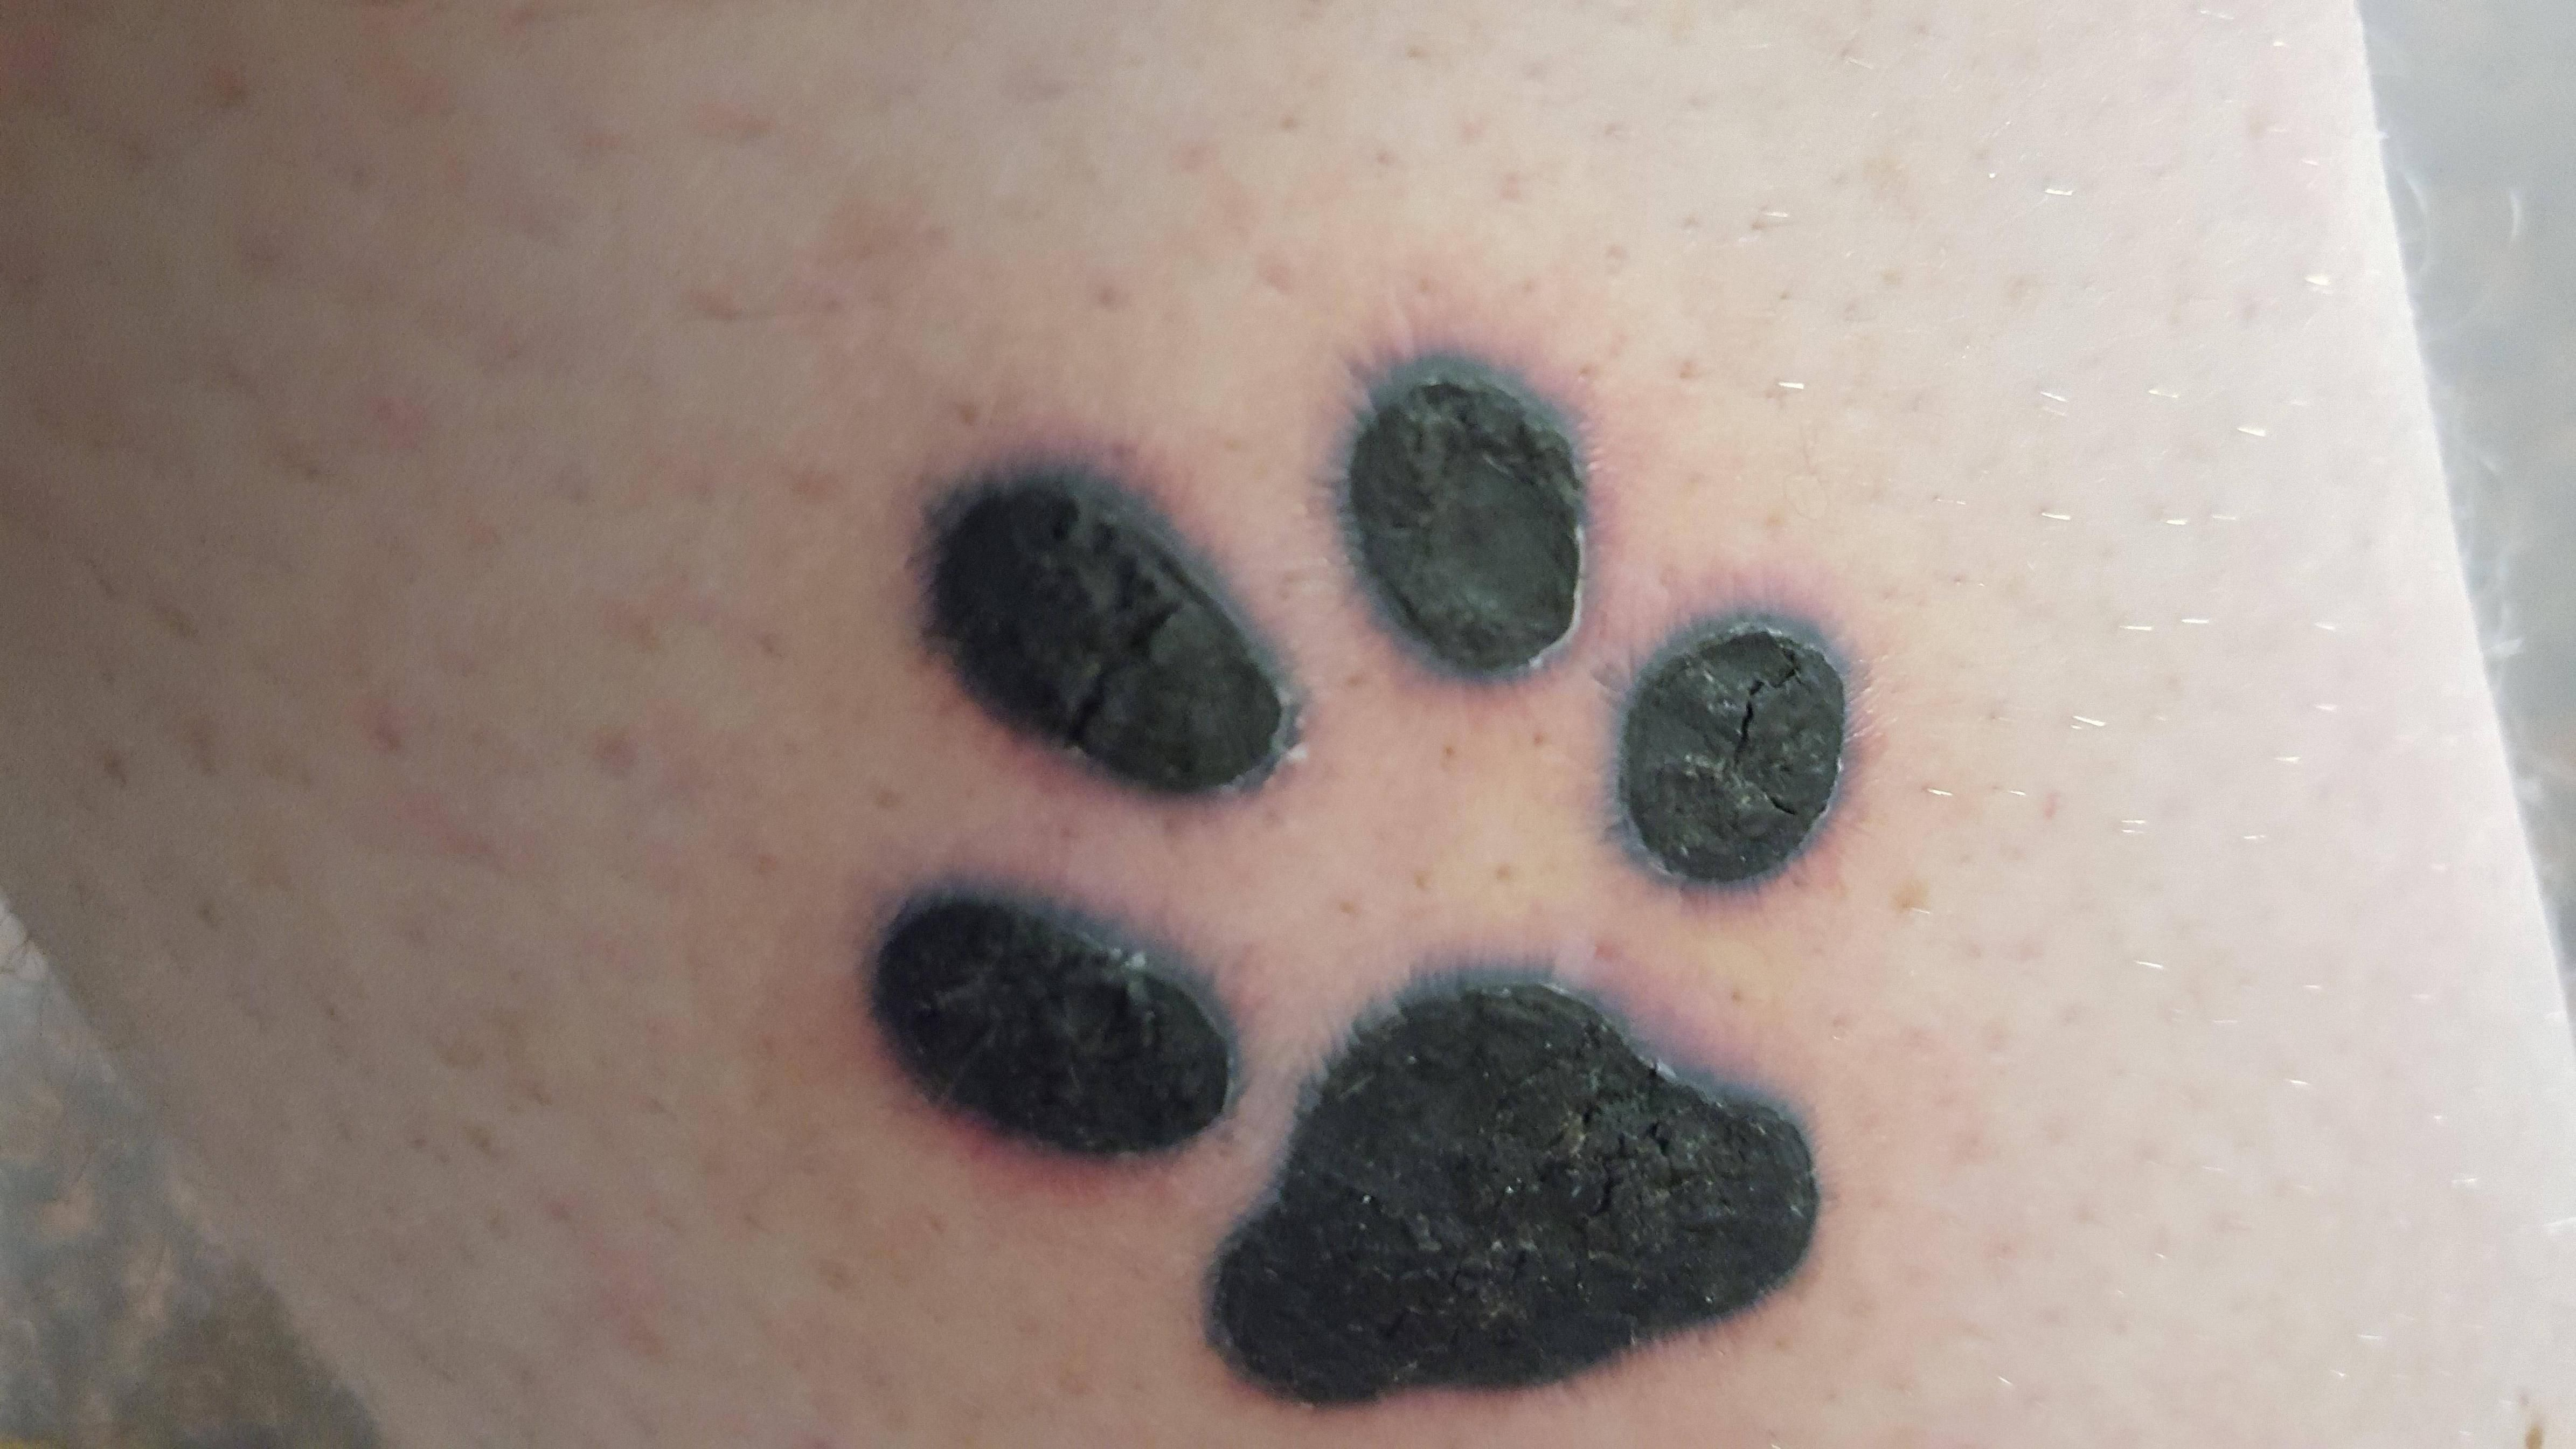 Home › Forums › Tattoo Forums › General Tattoo Discussion › Blowout